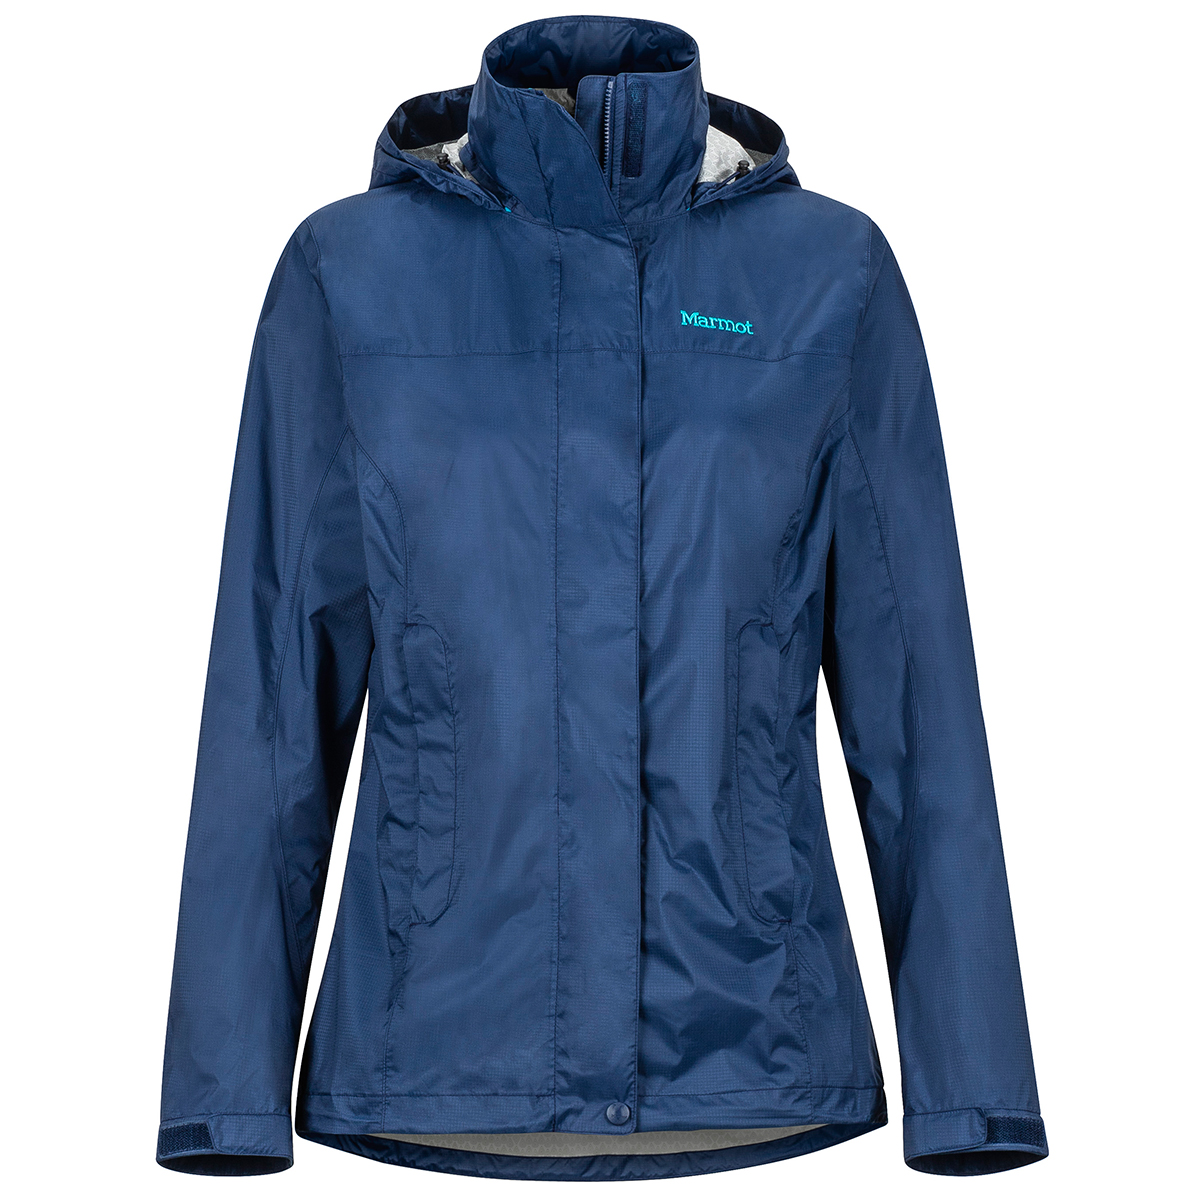 Marmot Women's Precip Eco Jacket - Blue, XS